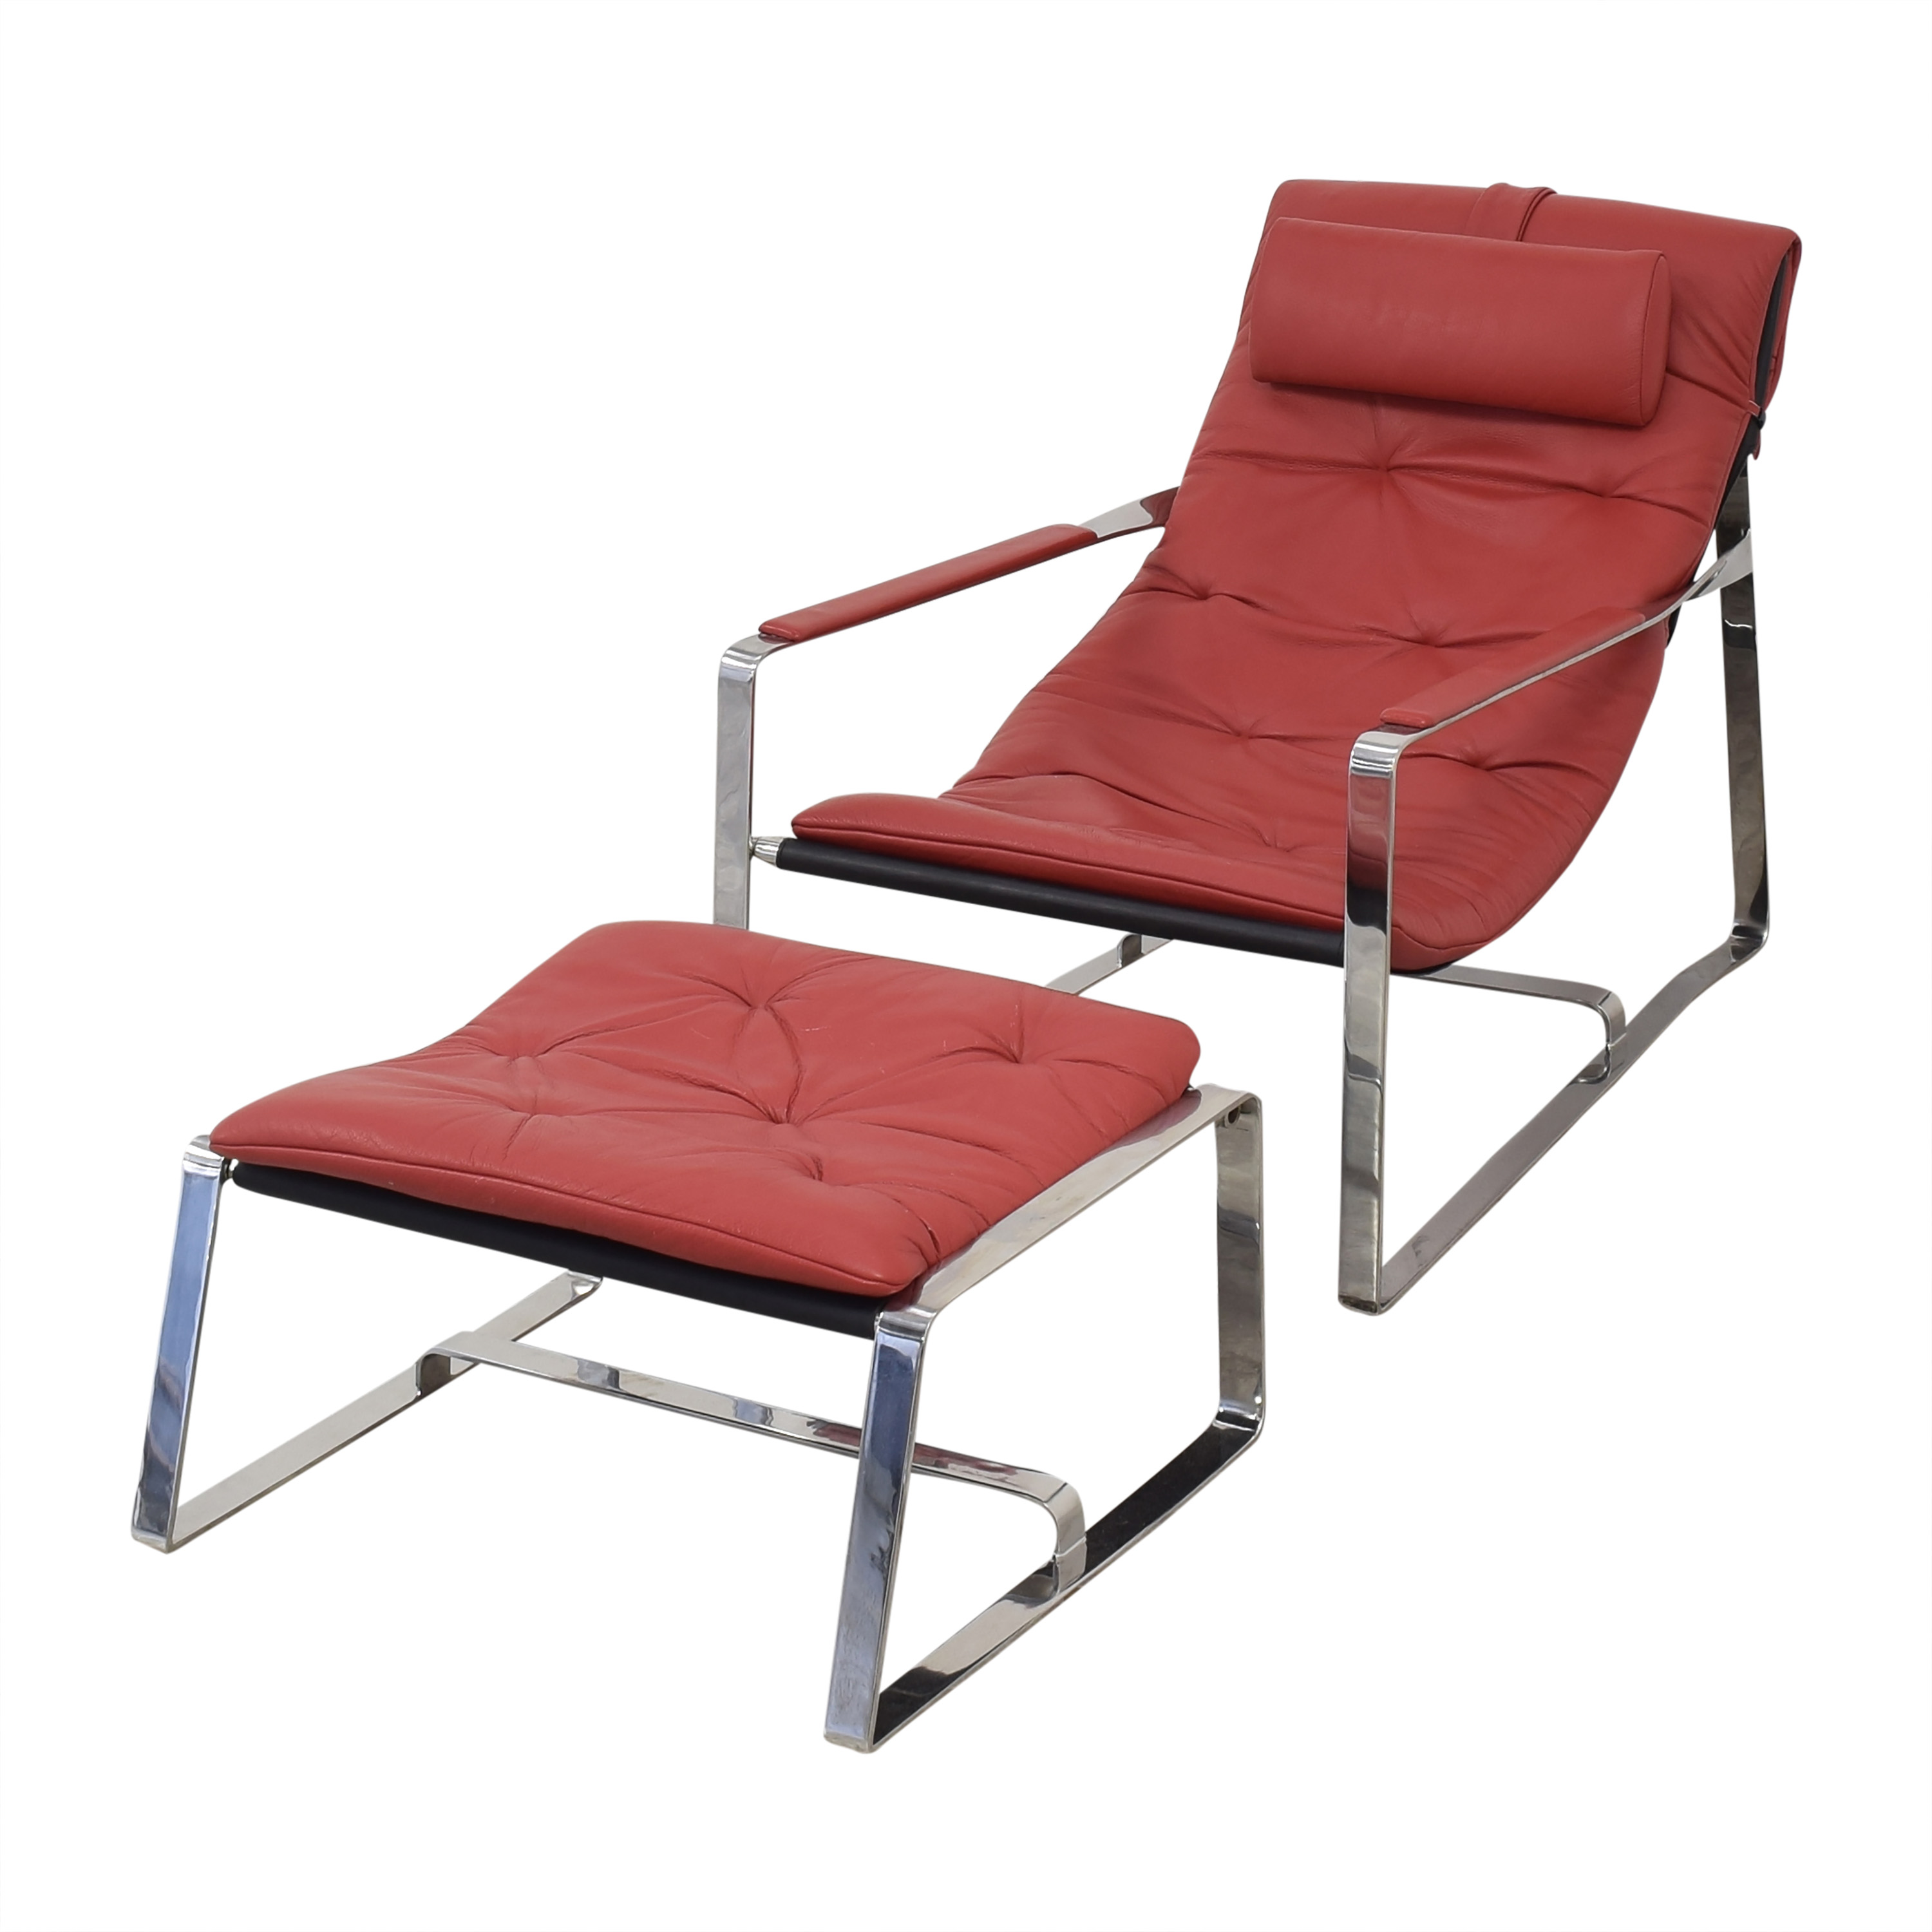 Sling Style Lounge Chair with Ottoman coupon